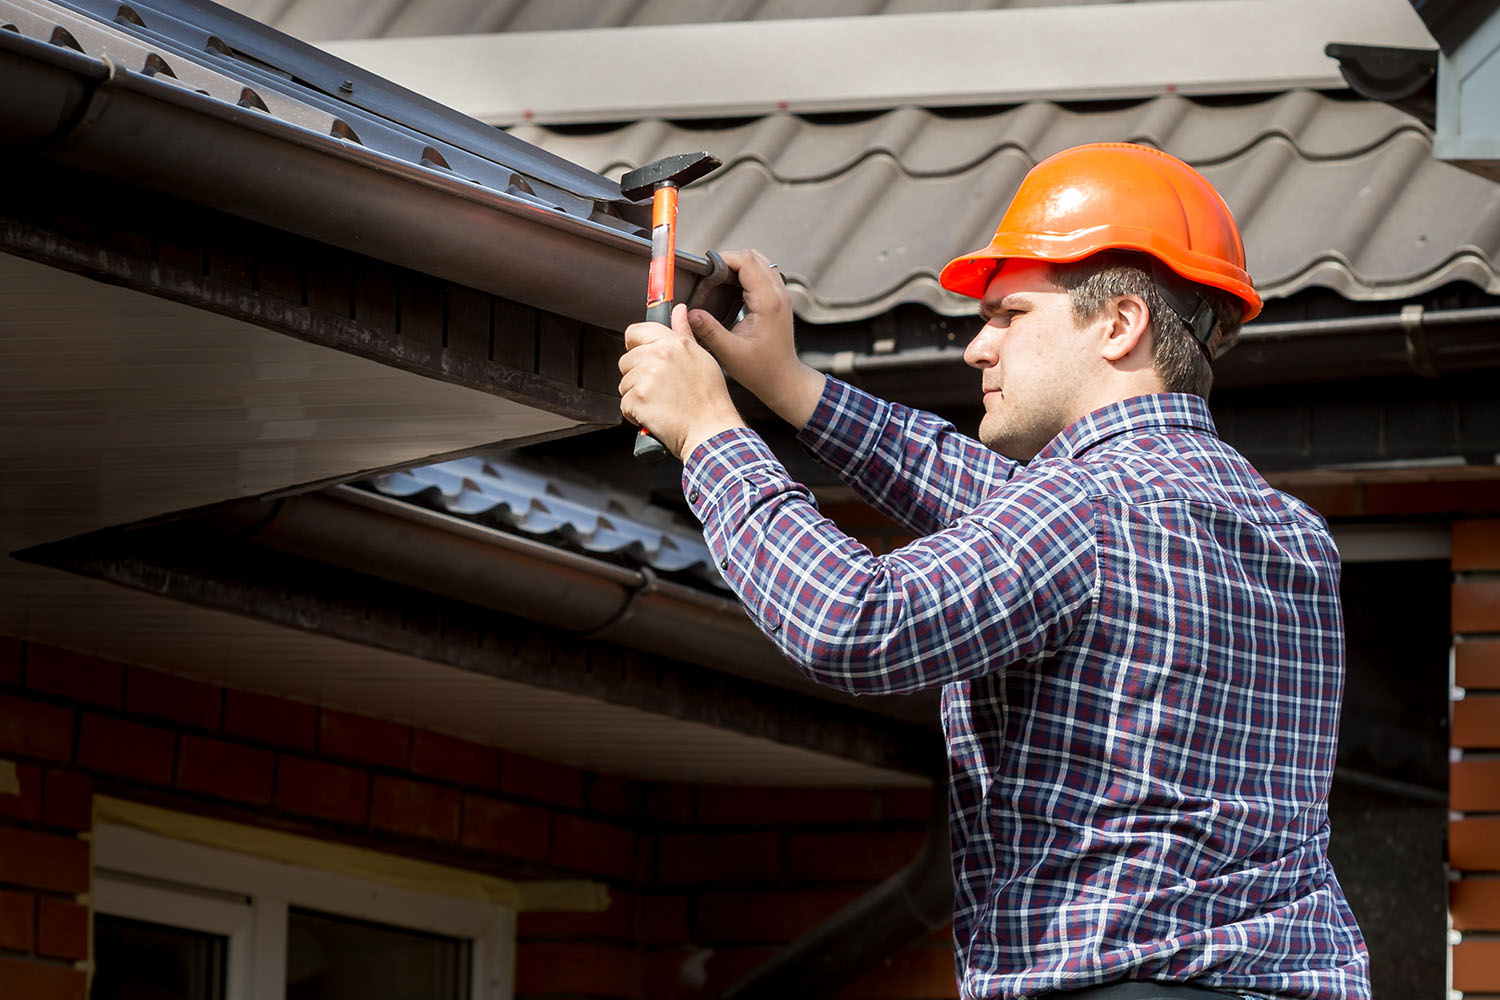 brevard county reroofing and commercial roofing services florida